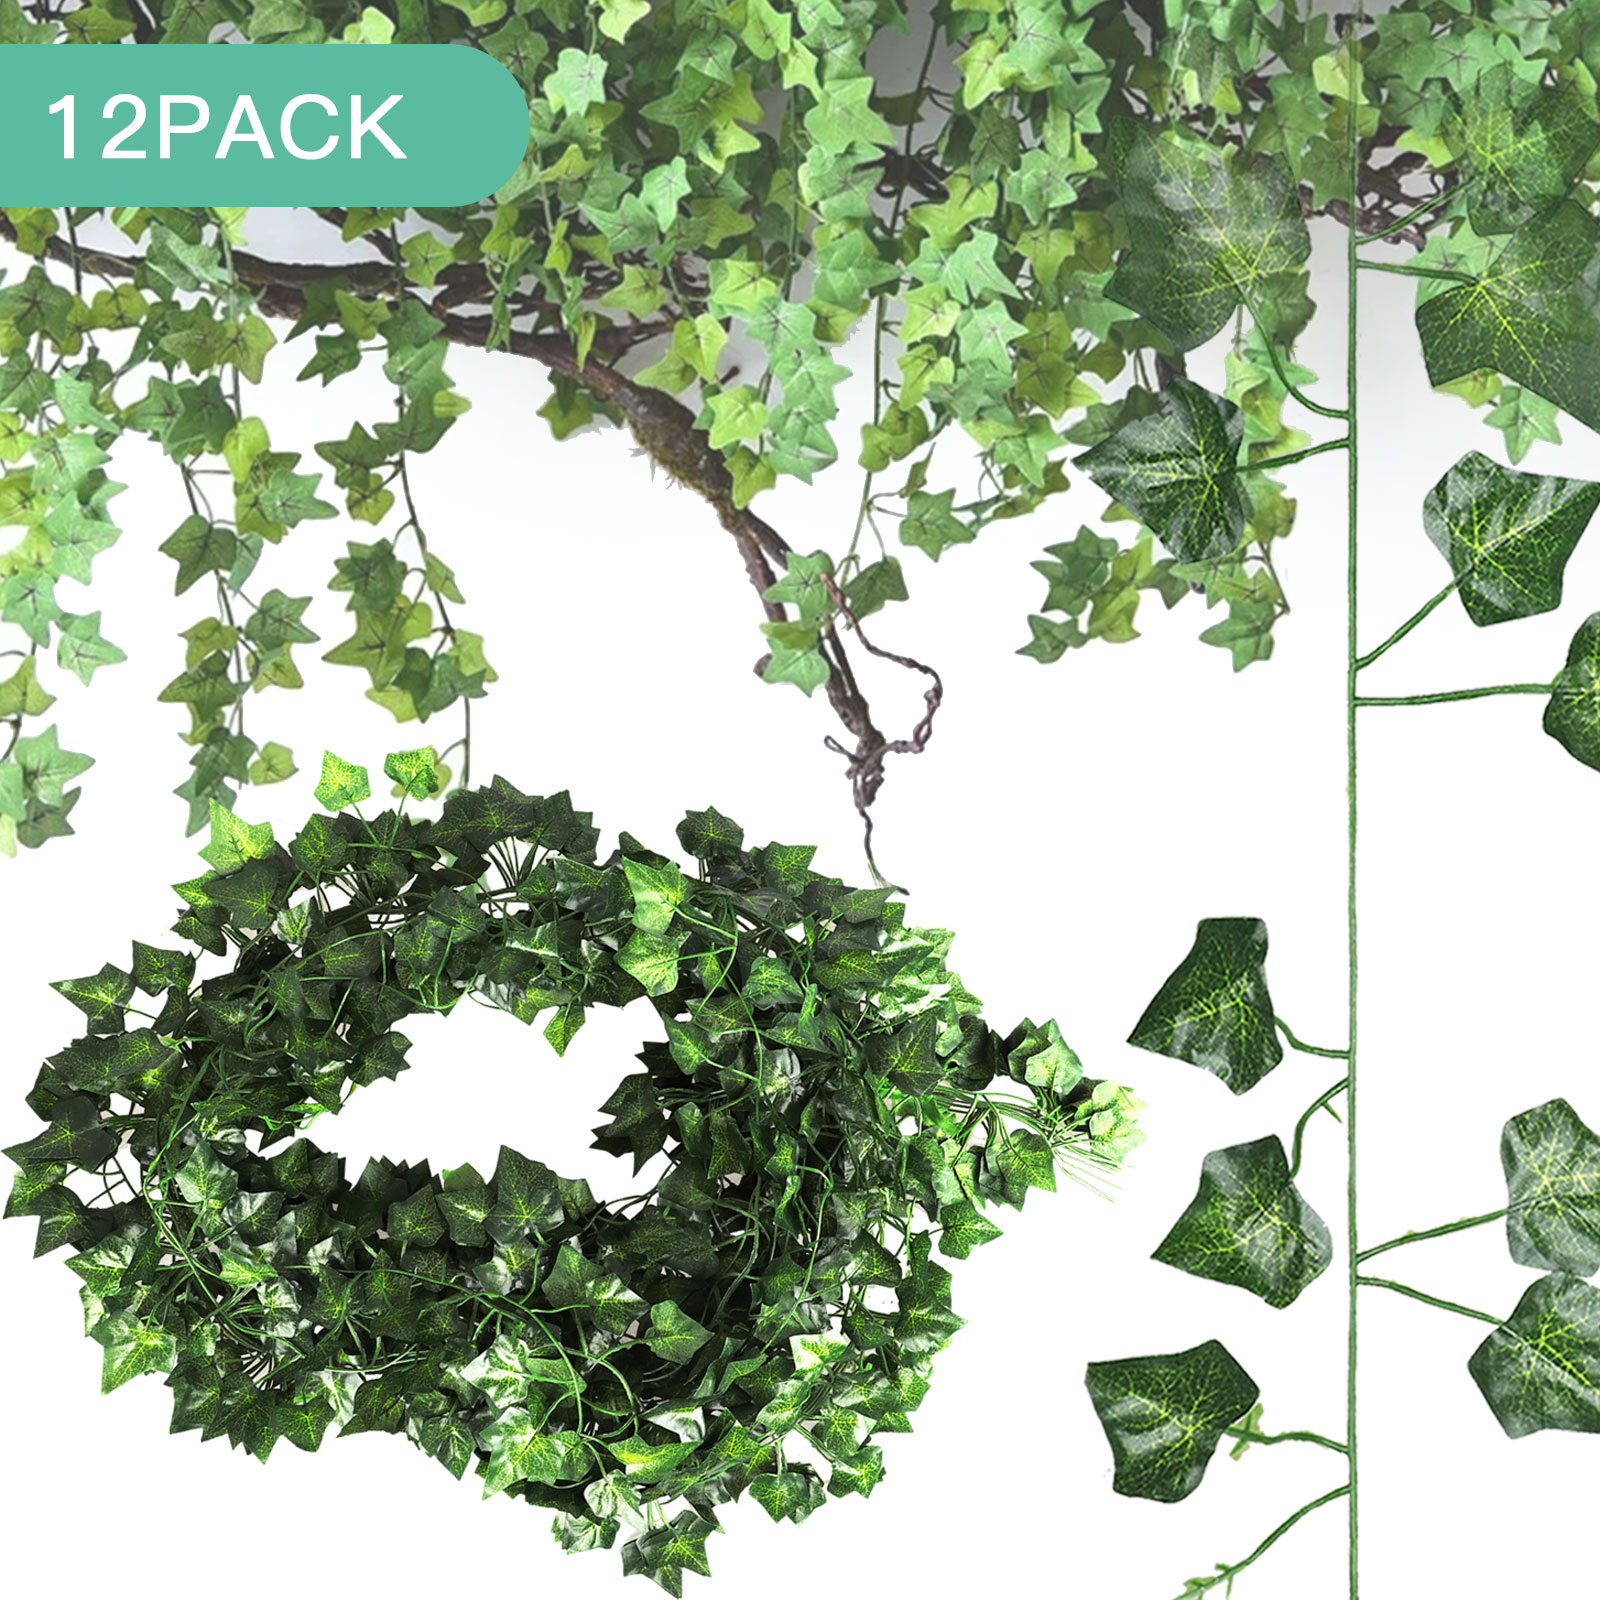 Eeekit 86 5 Ft 12pcs Individual Strands Fake Ivy Leaves Artificial Ivy Garland Greenery Decor Faux Green Hanging Plant Vine For Wall Party Wedding Room Home Kitchen Indoor Outdoor Decoration Walmart Com